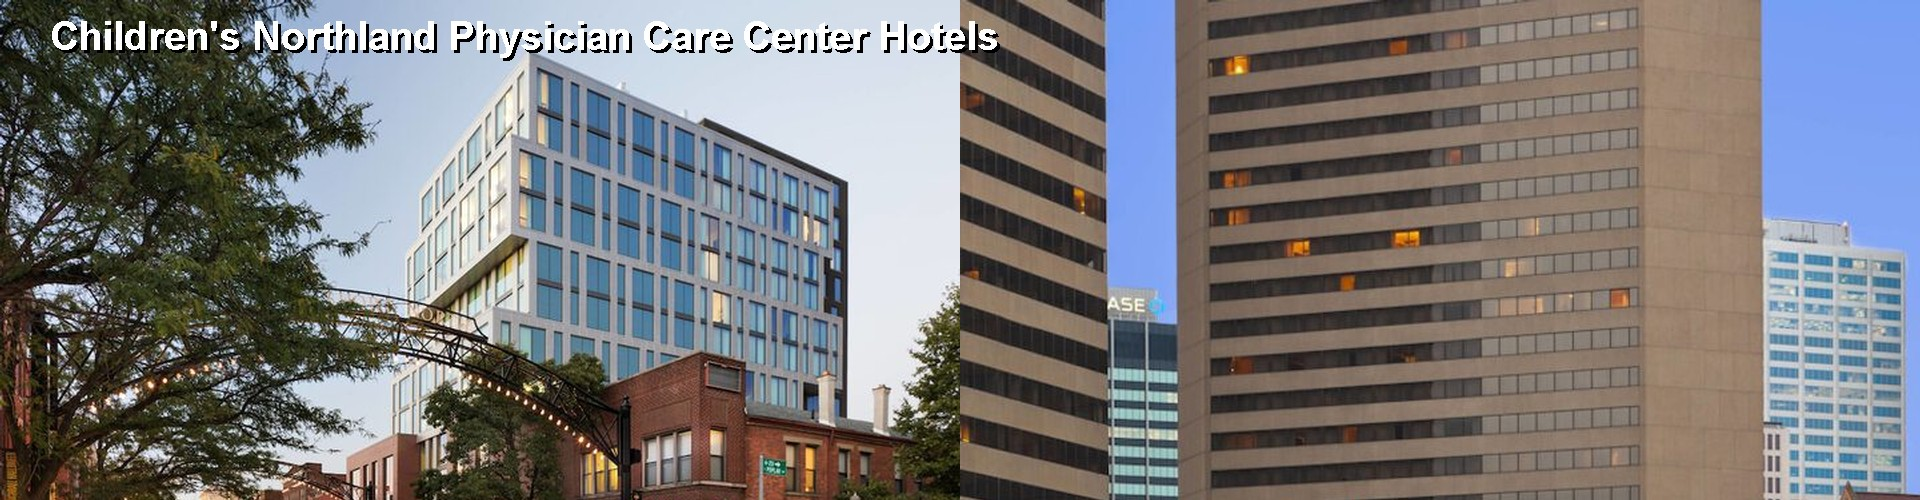 5 Best Hotels near Children's Northland Physician Care Center